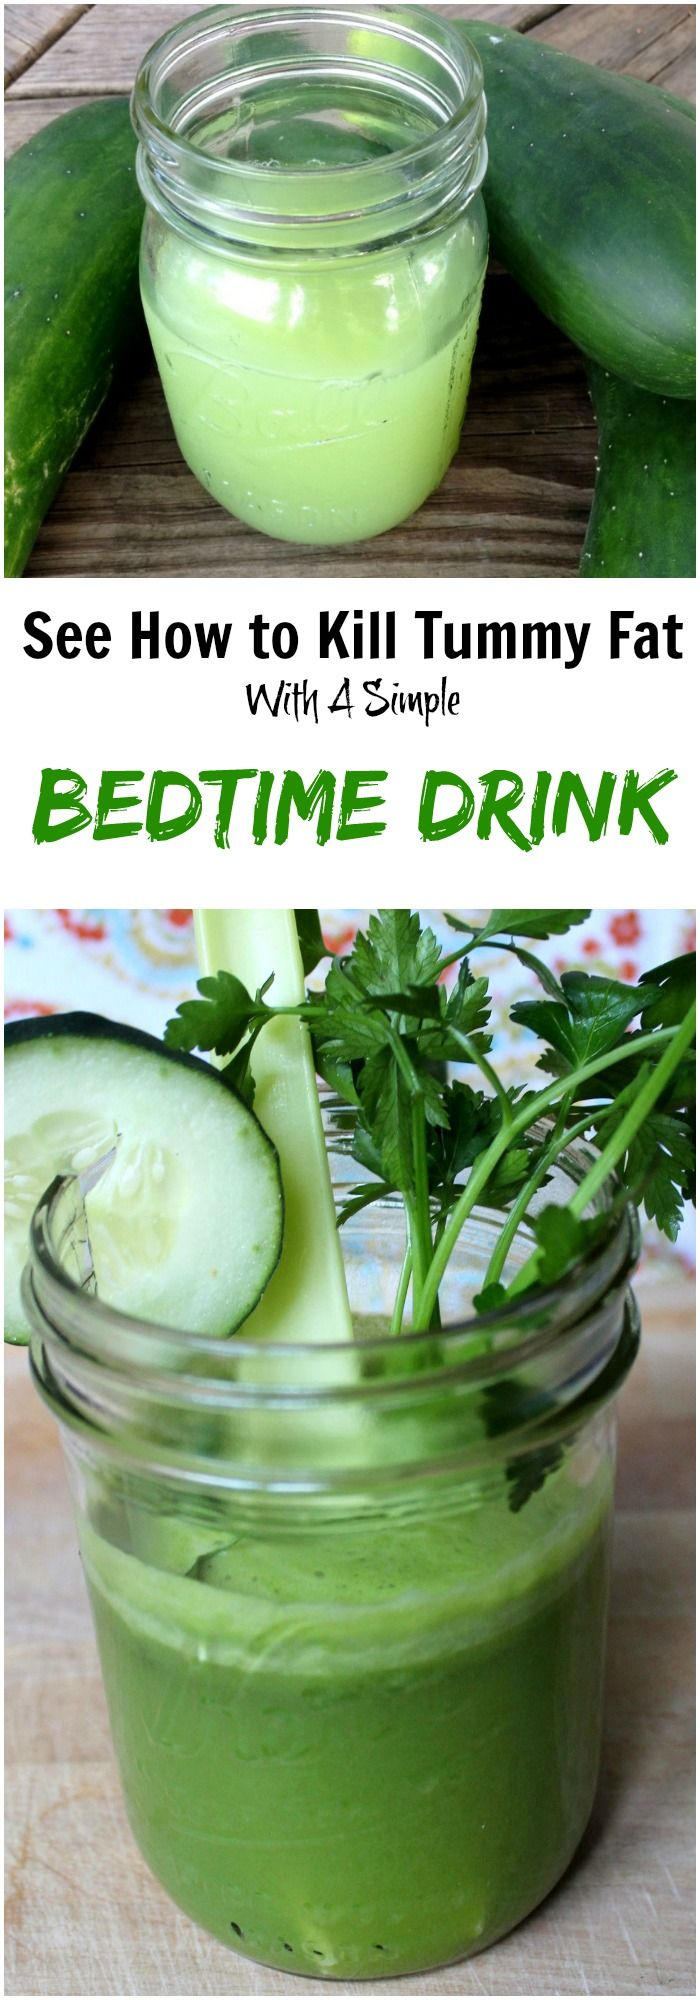 See How to Kill Tummy Fat With A Simple Bedtime Drink #weightloss #smoothie #healthy #fit